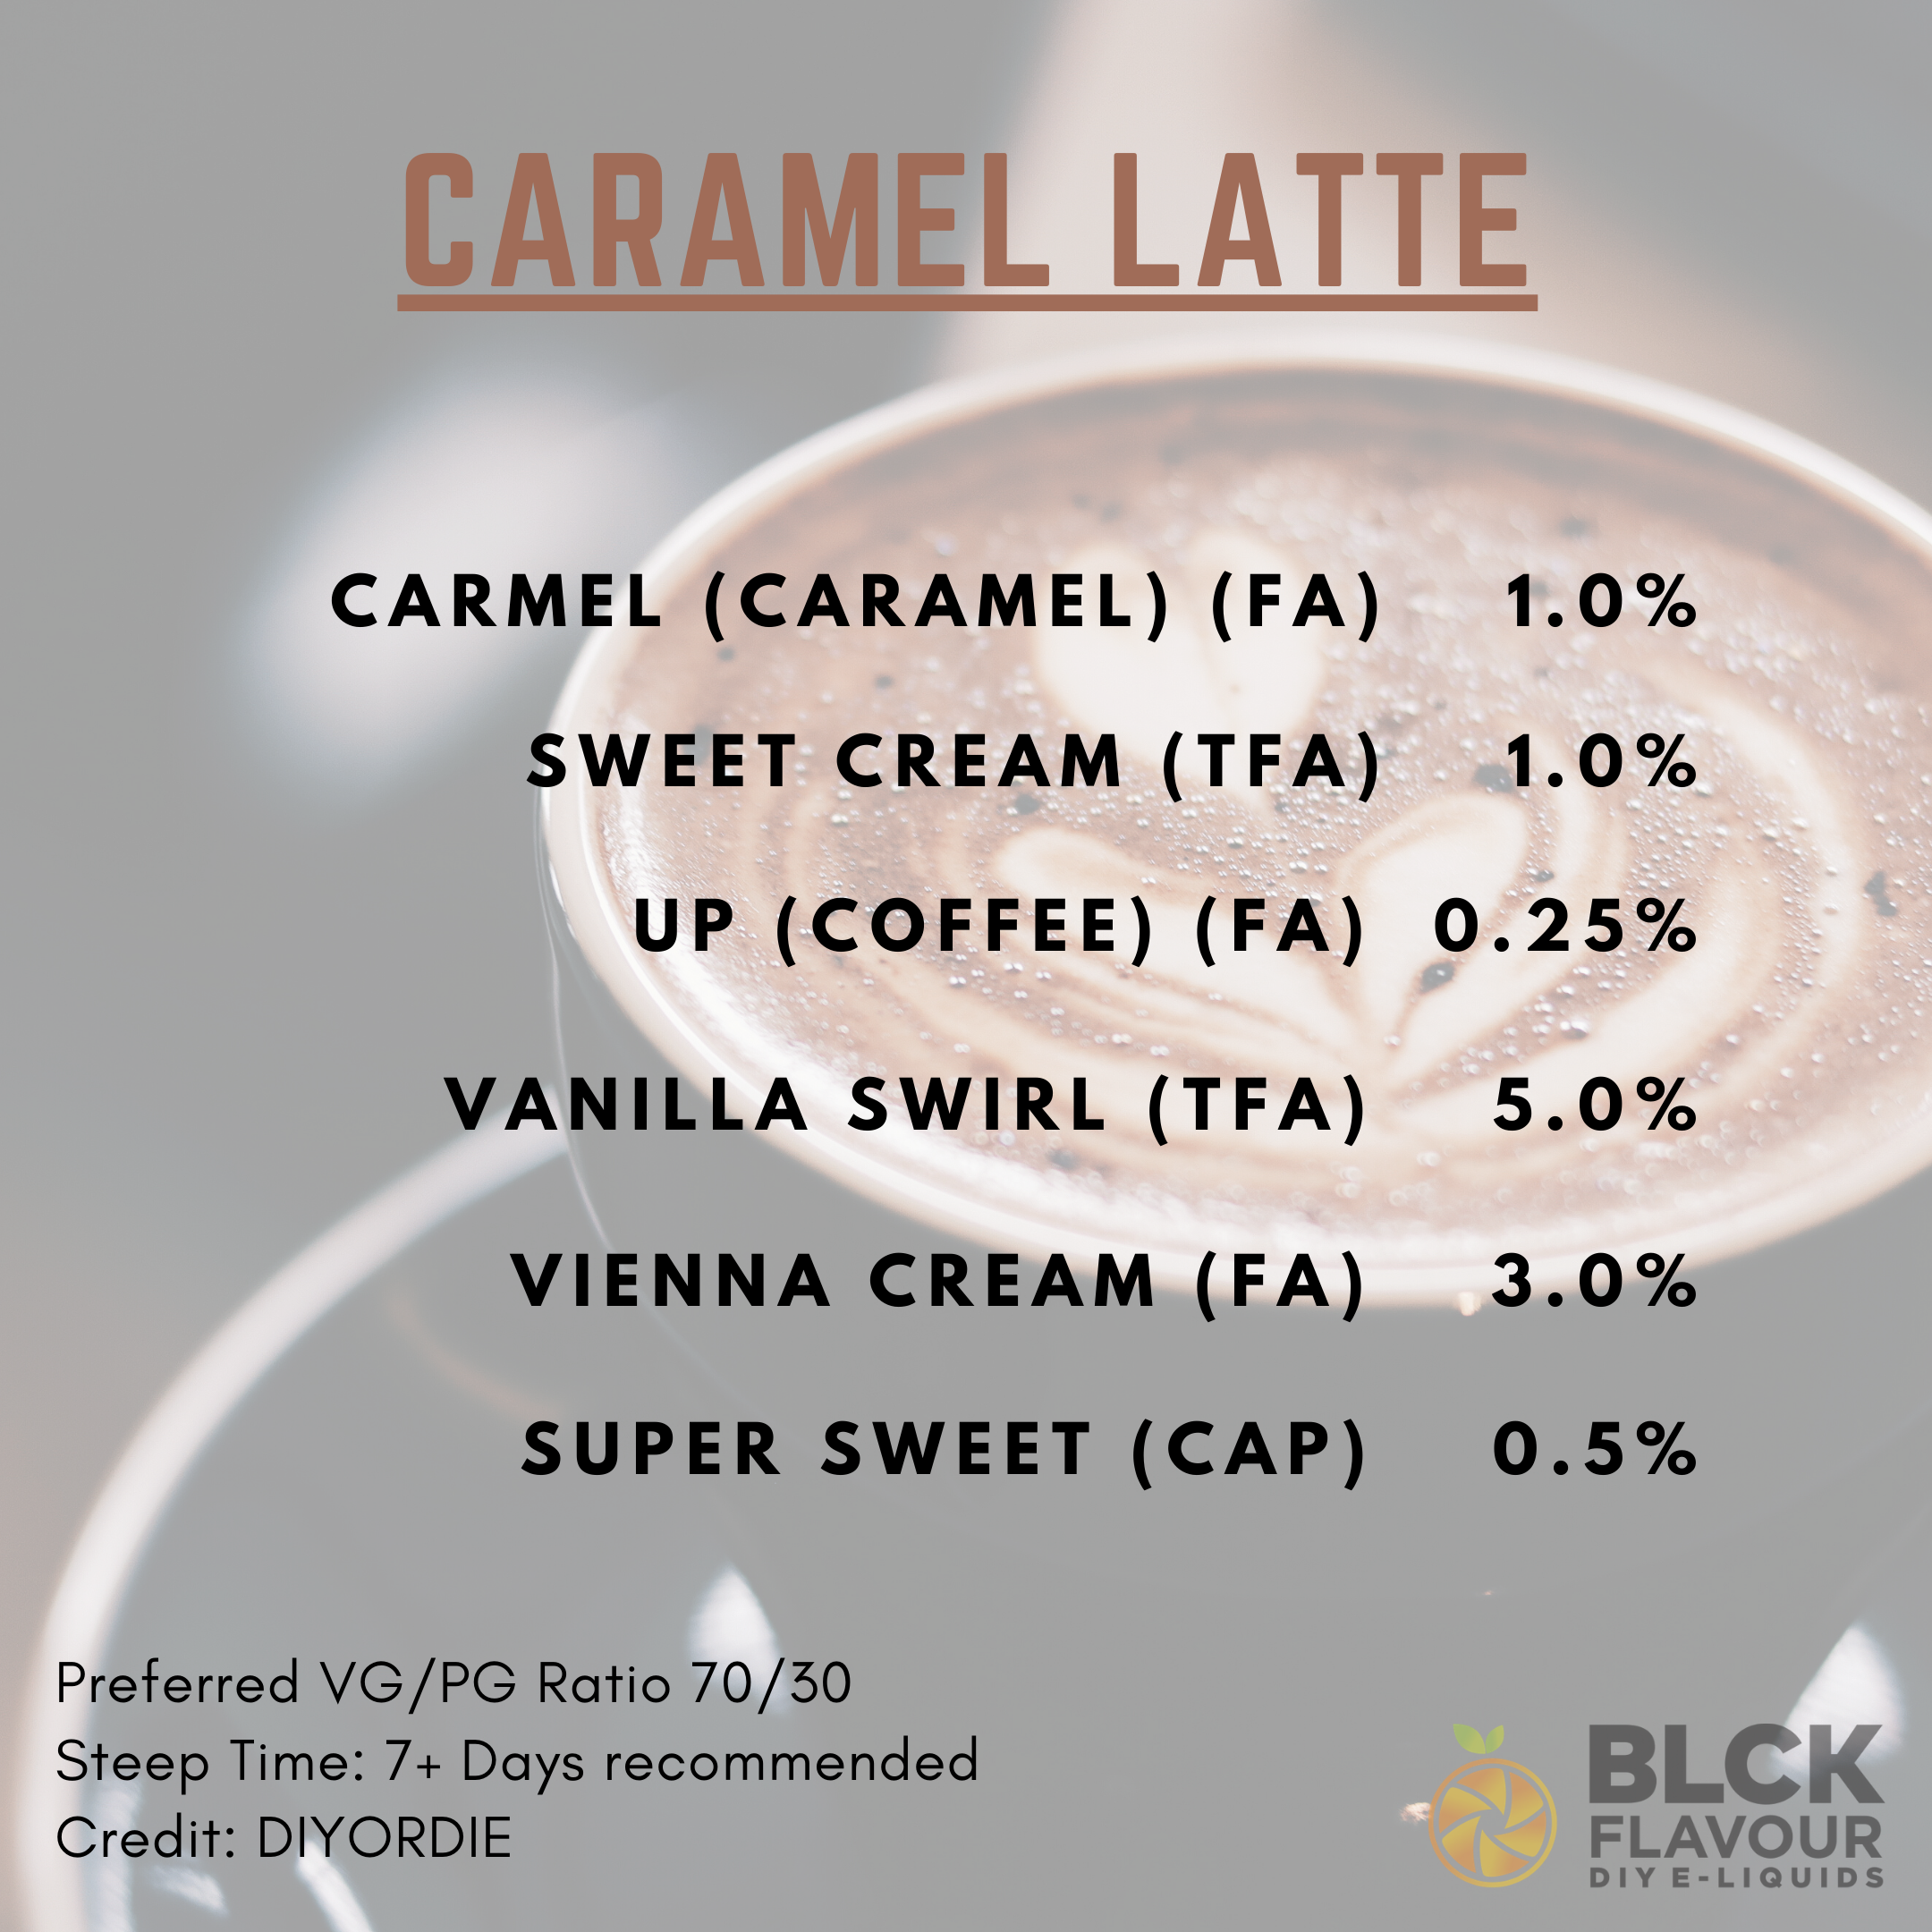 RB Caramel Latte Recipe Card